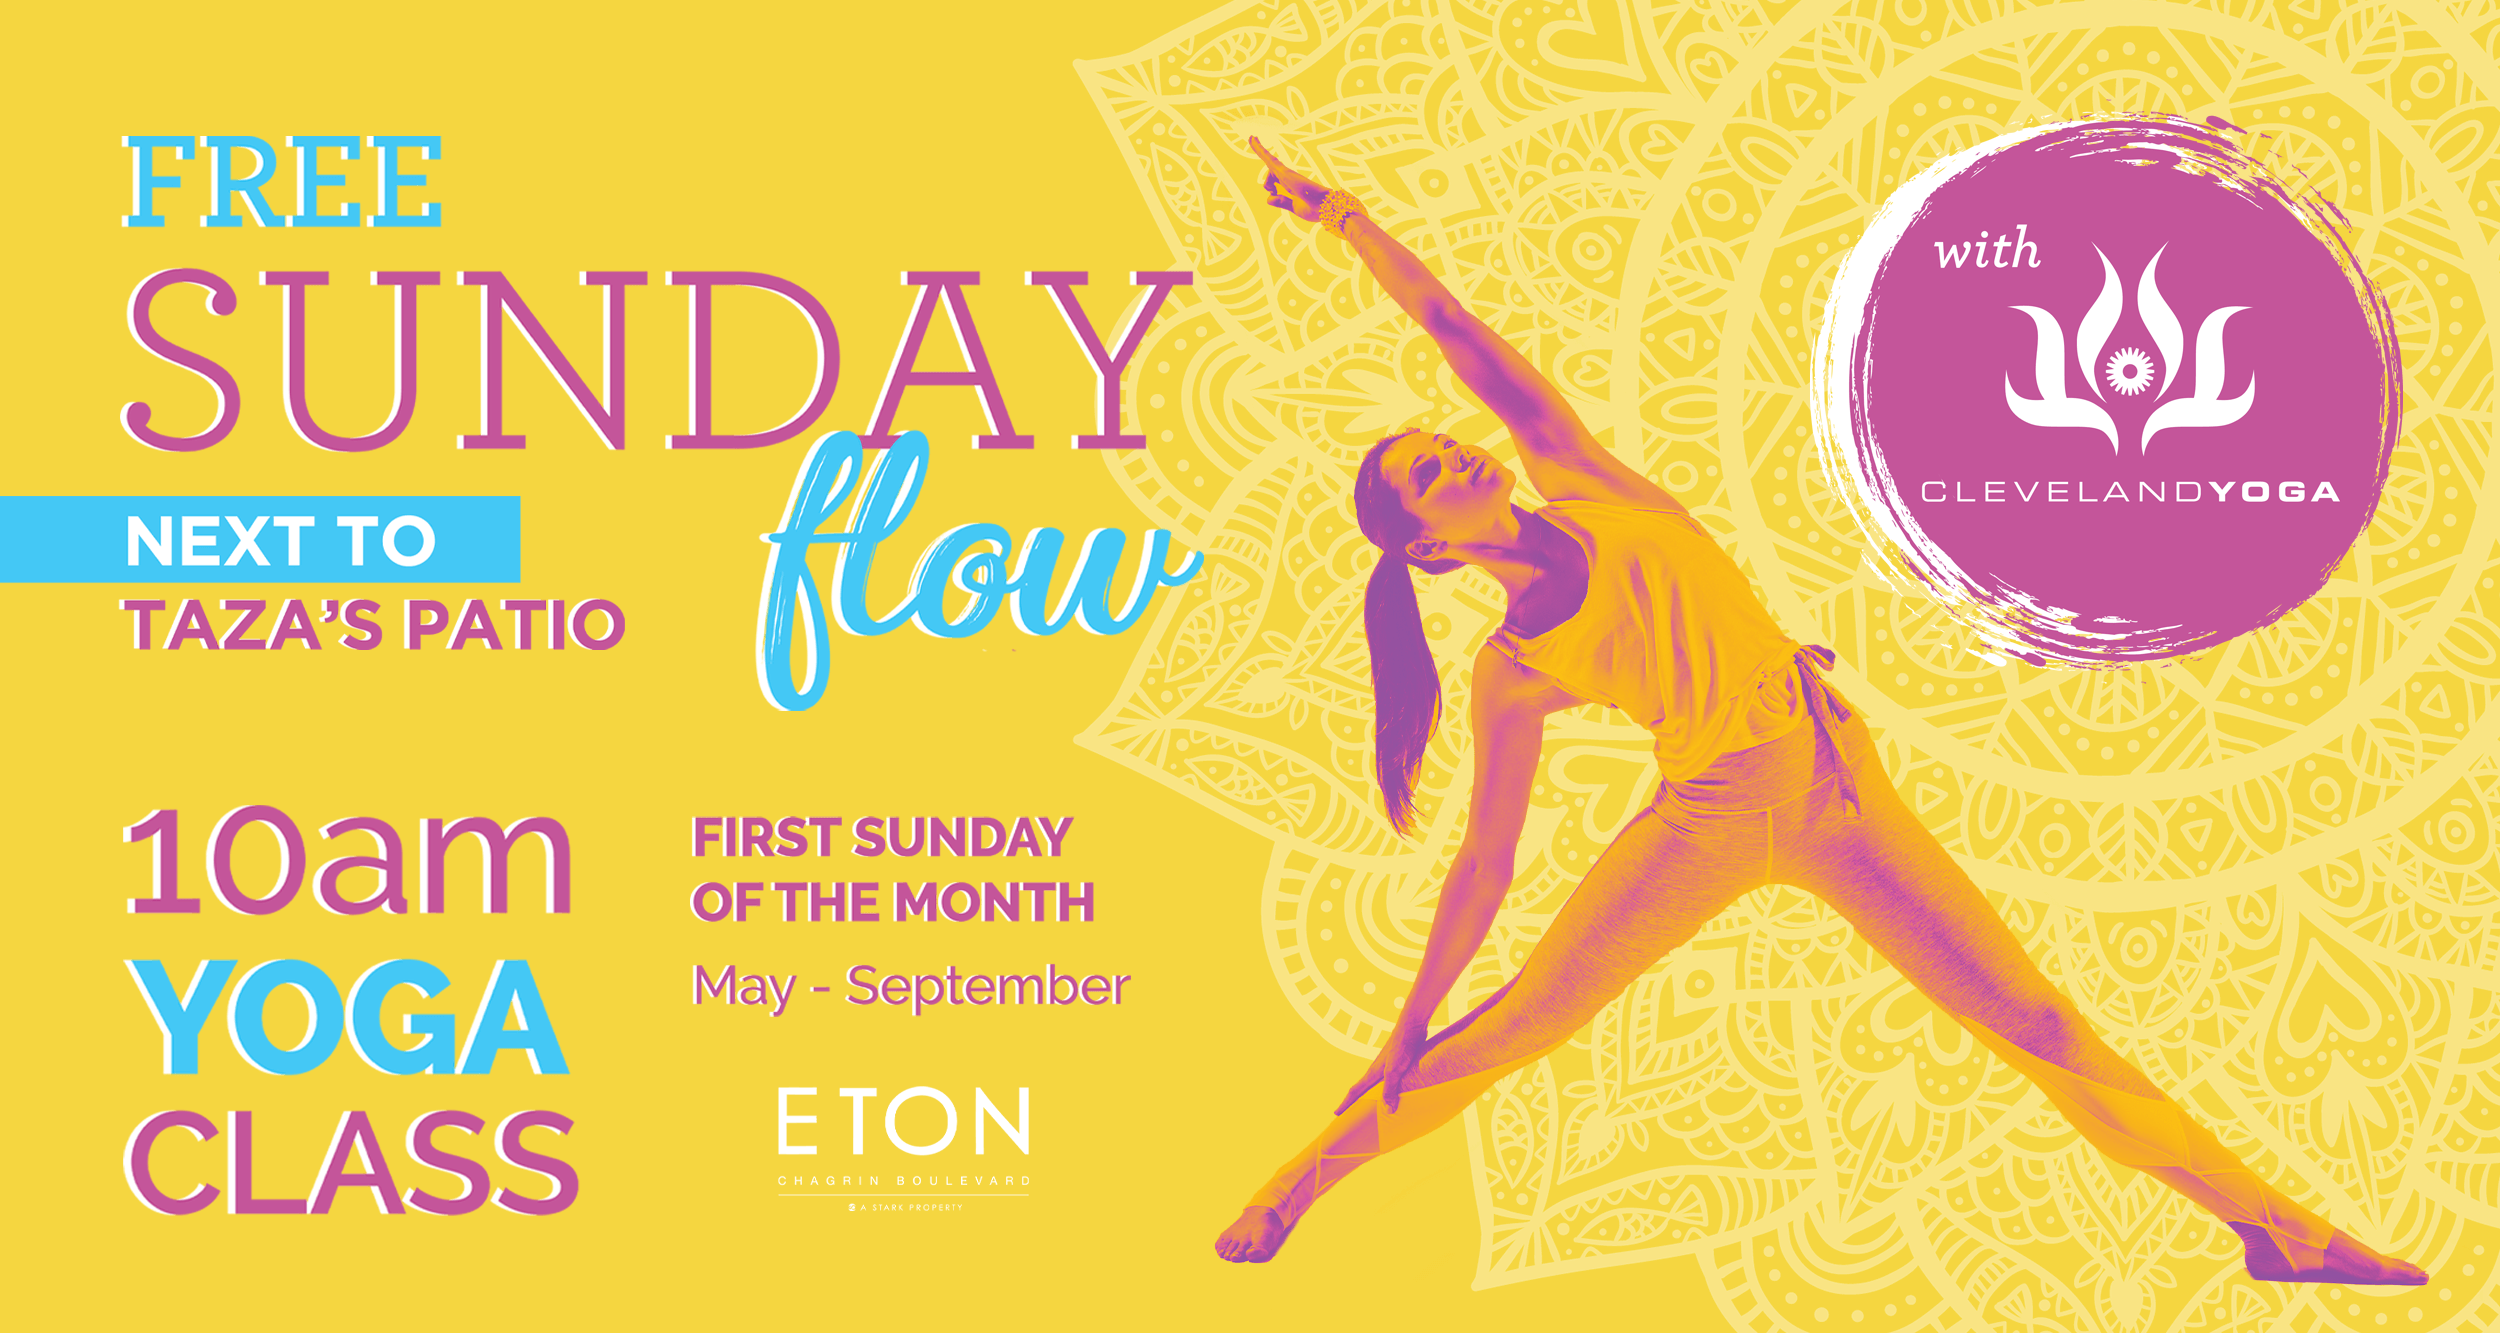 Sunday Flow with Cleveland Yoga